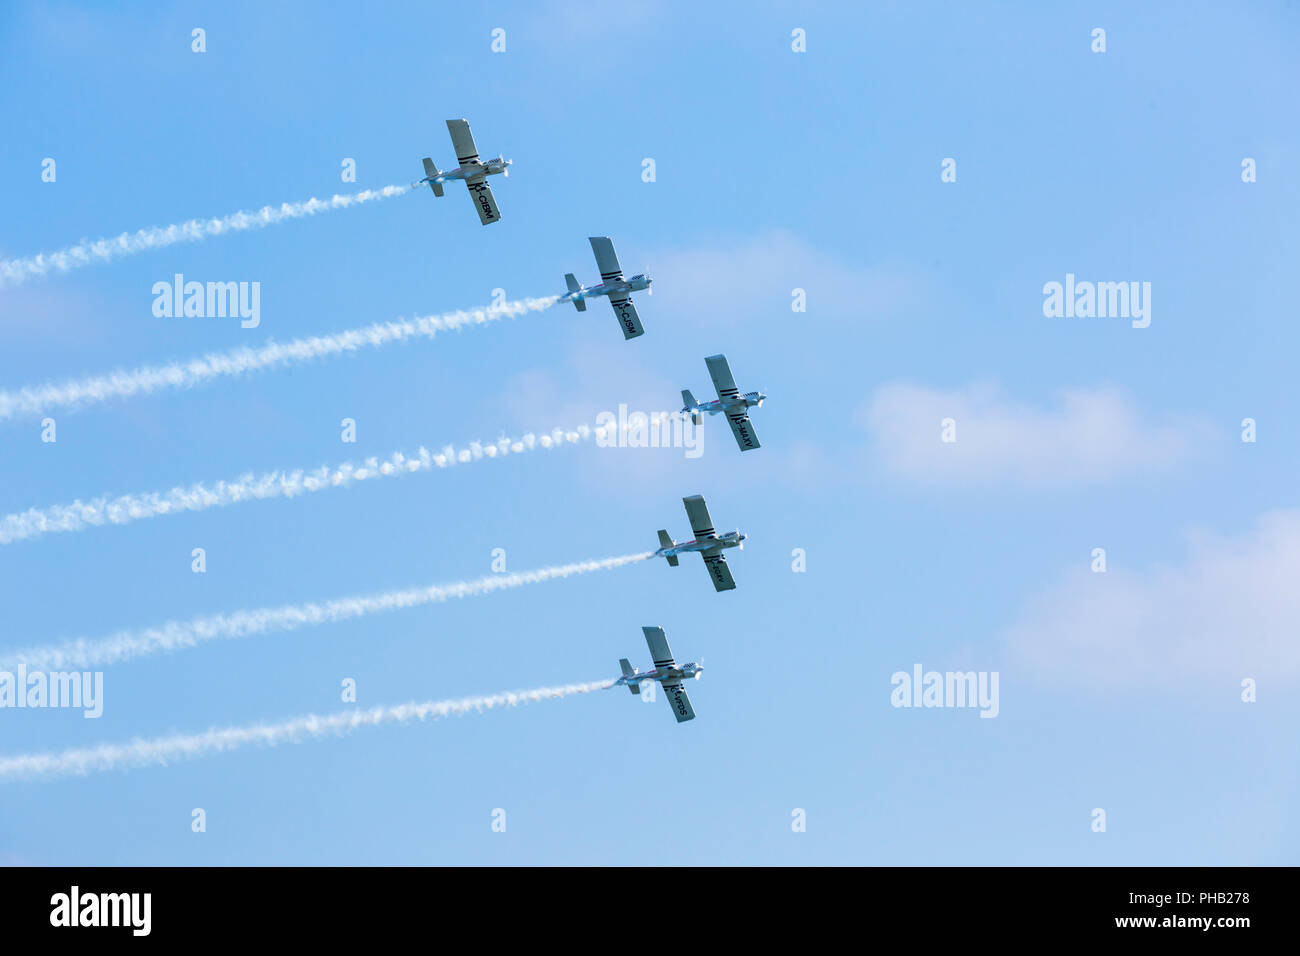 Bournemouth, UK. 31st August 2018. Crowds flock to Bournemouth for the 2nd day of the 11th annual Bournemouth Air Festival.  Team Raven thrill the crowds. Team Raven, aerobatic display team of 5 aircraft display for the first time at Bournemouth. Credit: Carolyn Jenkins/Alamy Live News Stock Photo